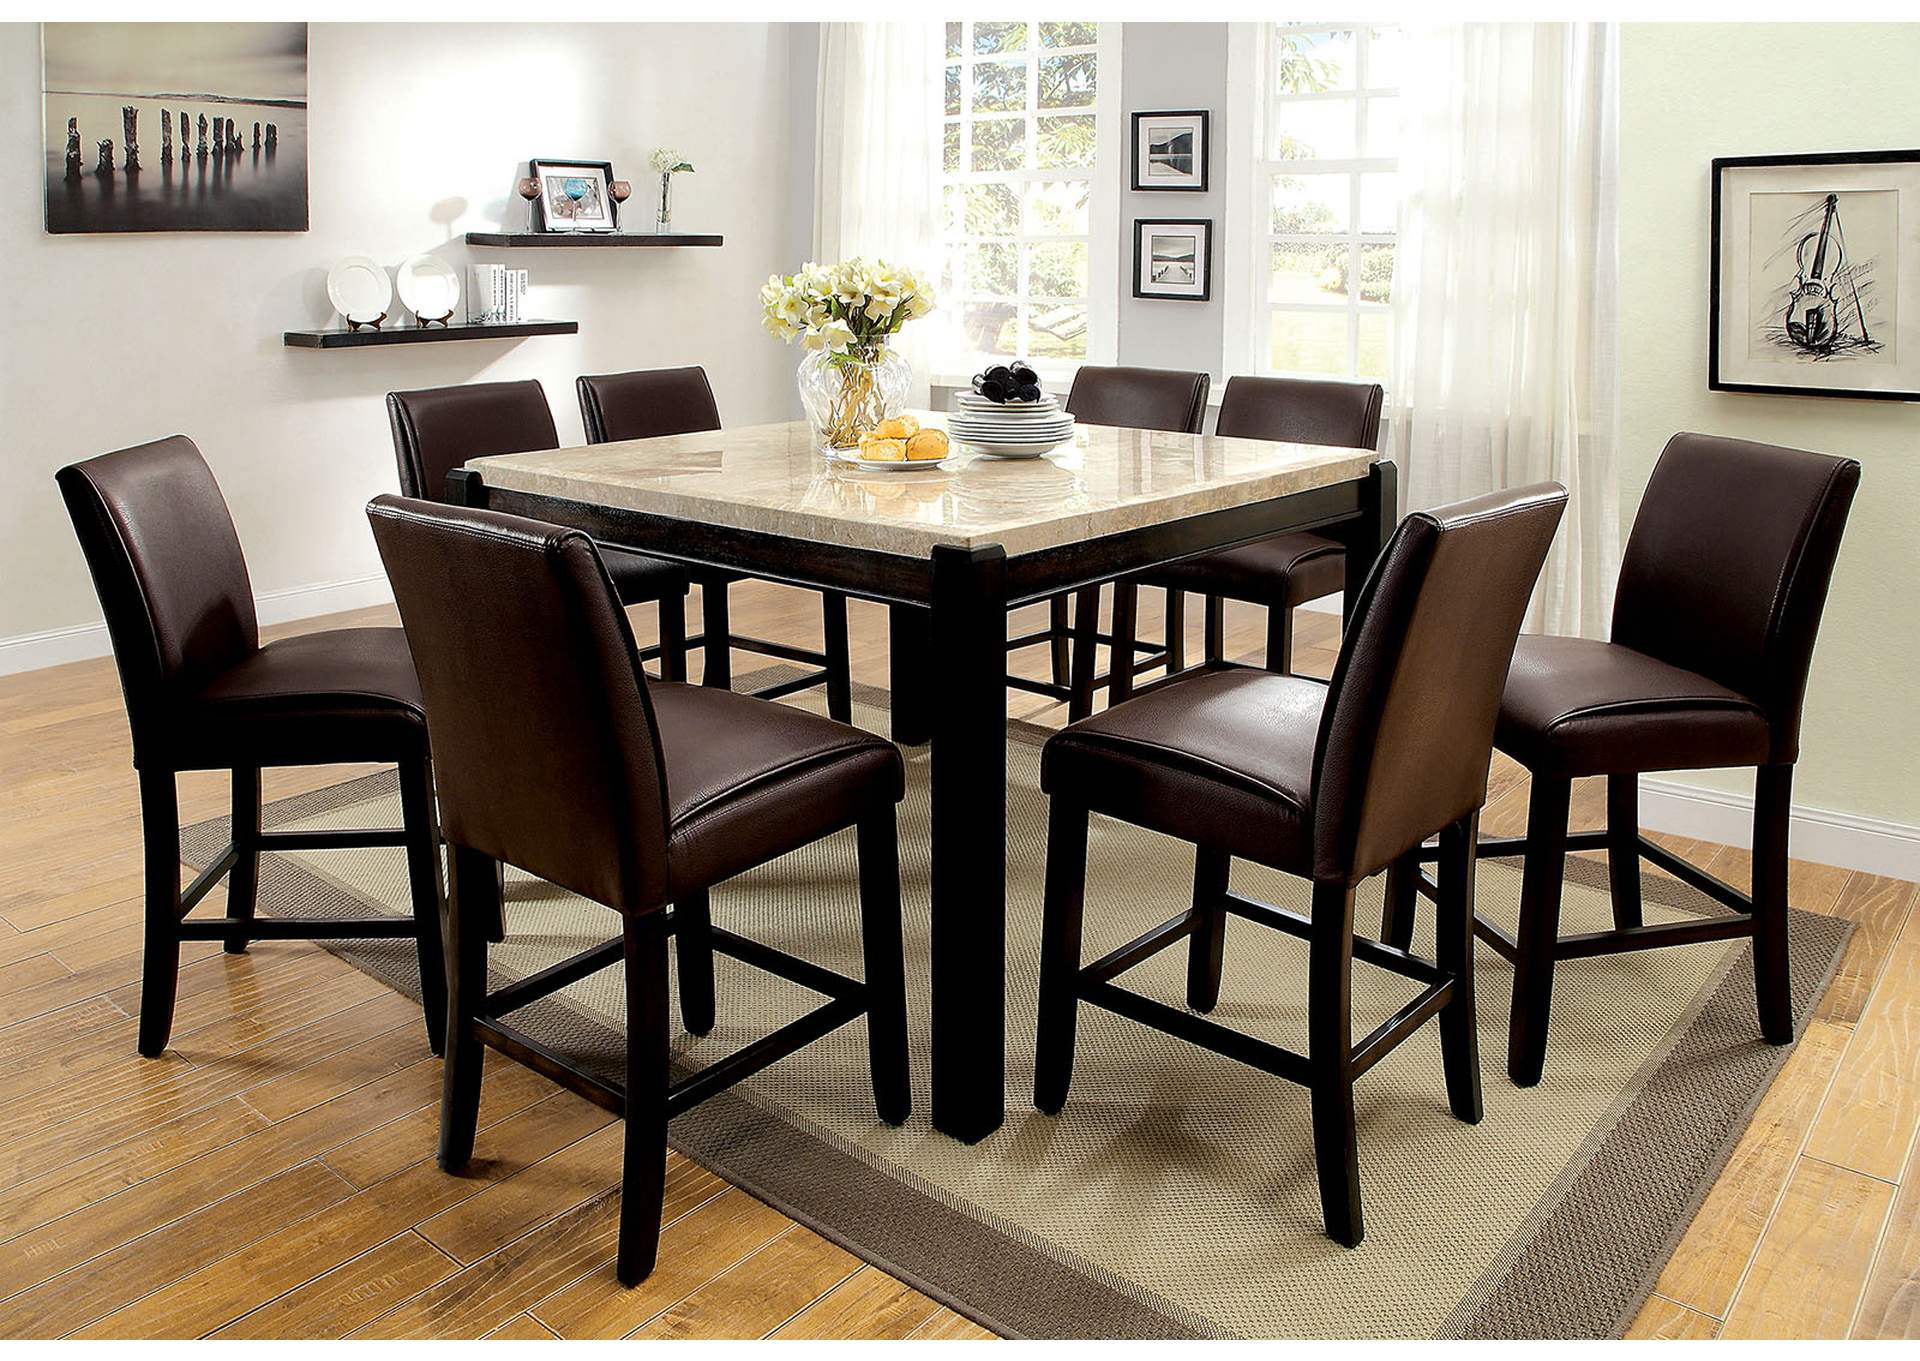 Gladstone II Dark Walnut Marble Top Counter Height Table W/6 Counter Height  Chairs,